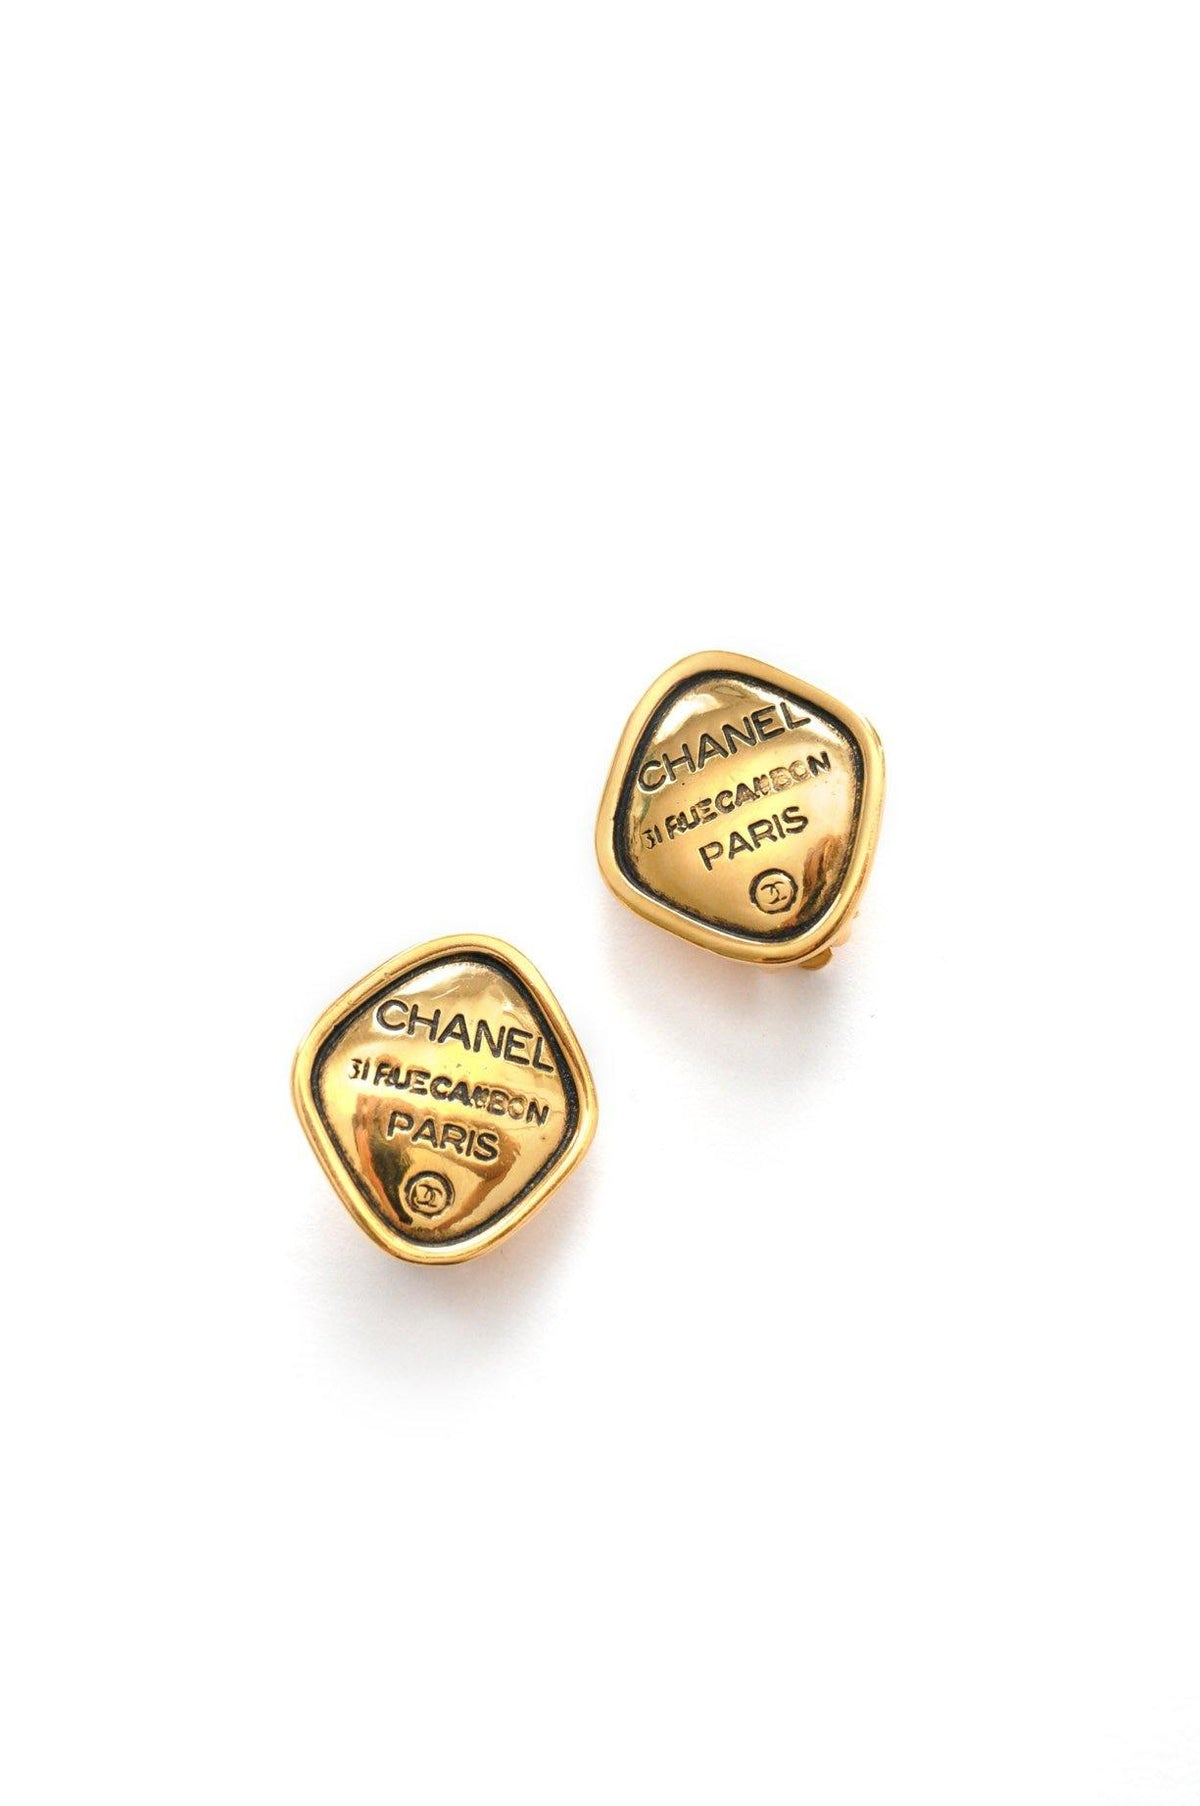 Vintage Chanel statement clip-on earrings from Sweet & Spark.